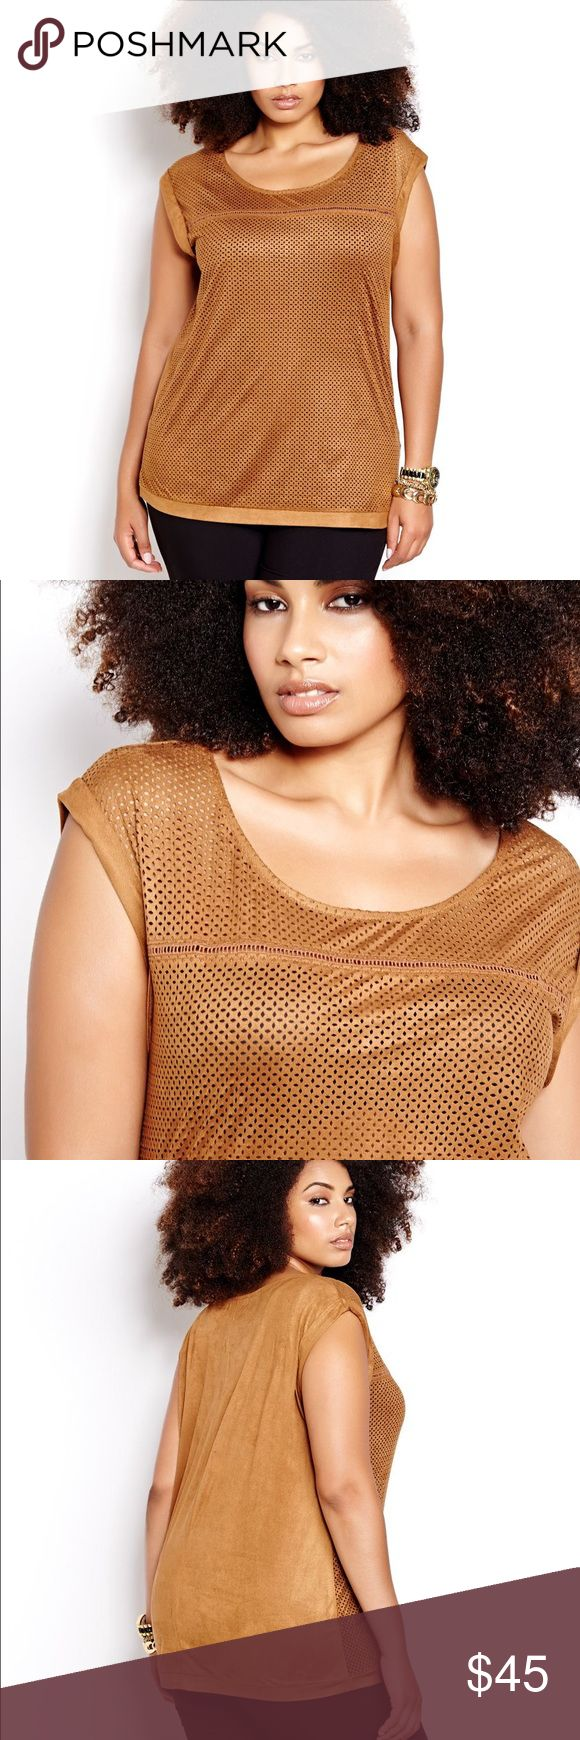 Addition Elle Perforated Faux Suede Top Beautiful sueded top Addition Elle in the dress perfect cognac / toffee color. Sexy perforated design on the front (will require a cami or tank underneath) and solid back. Round neckline, extended sleeveless shoulders. Soft and stylish, pairs great with boots and a cardigan! Addition Elle Tops Blouses